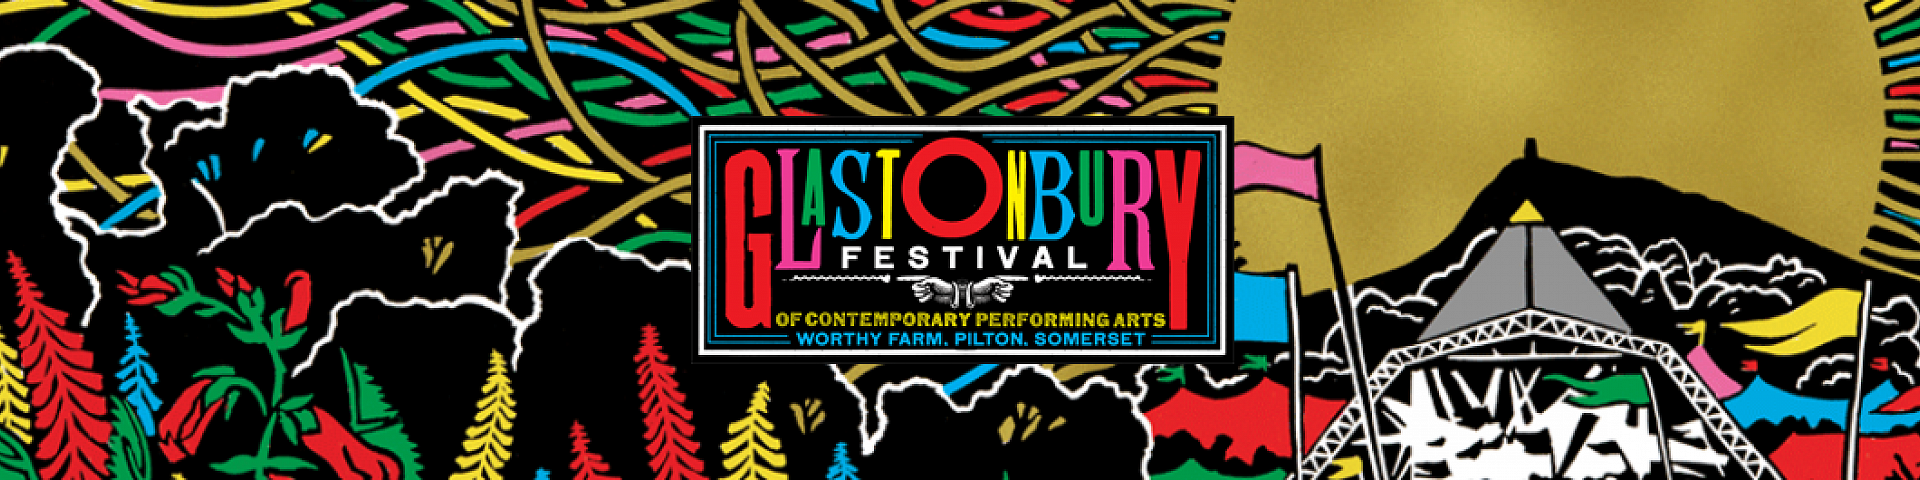 Glastonbury with VW Camper Hire